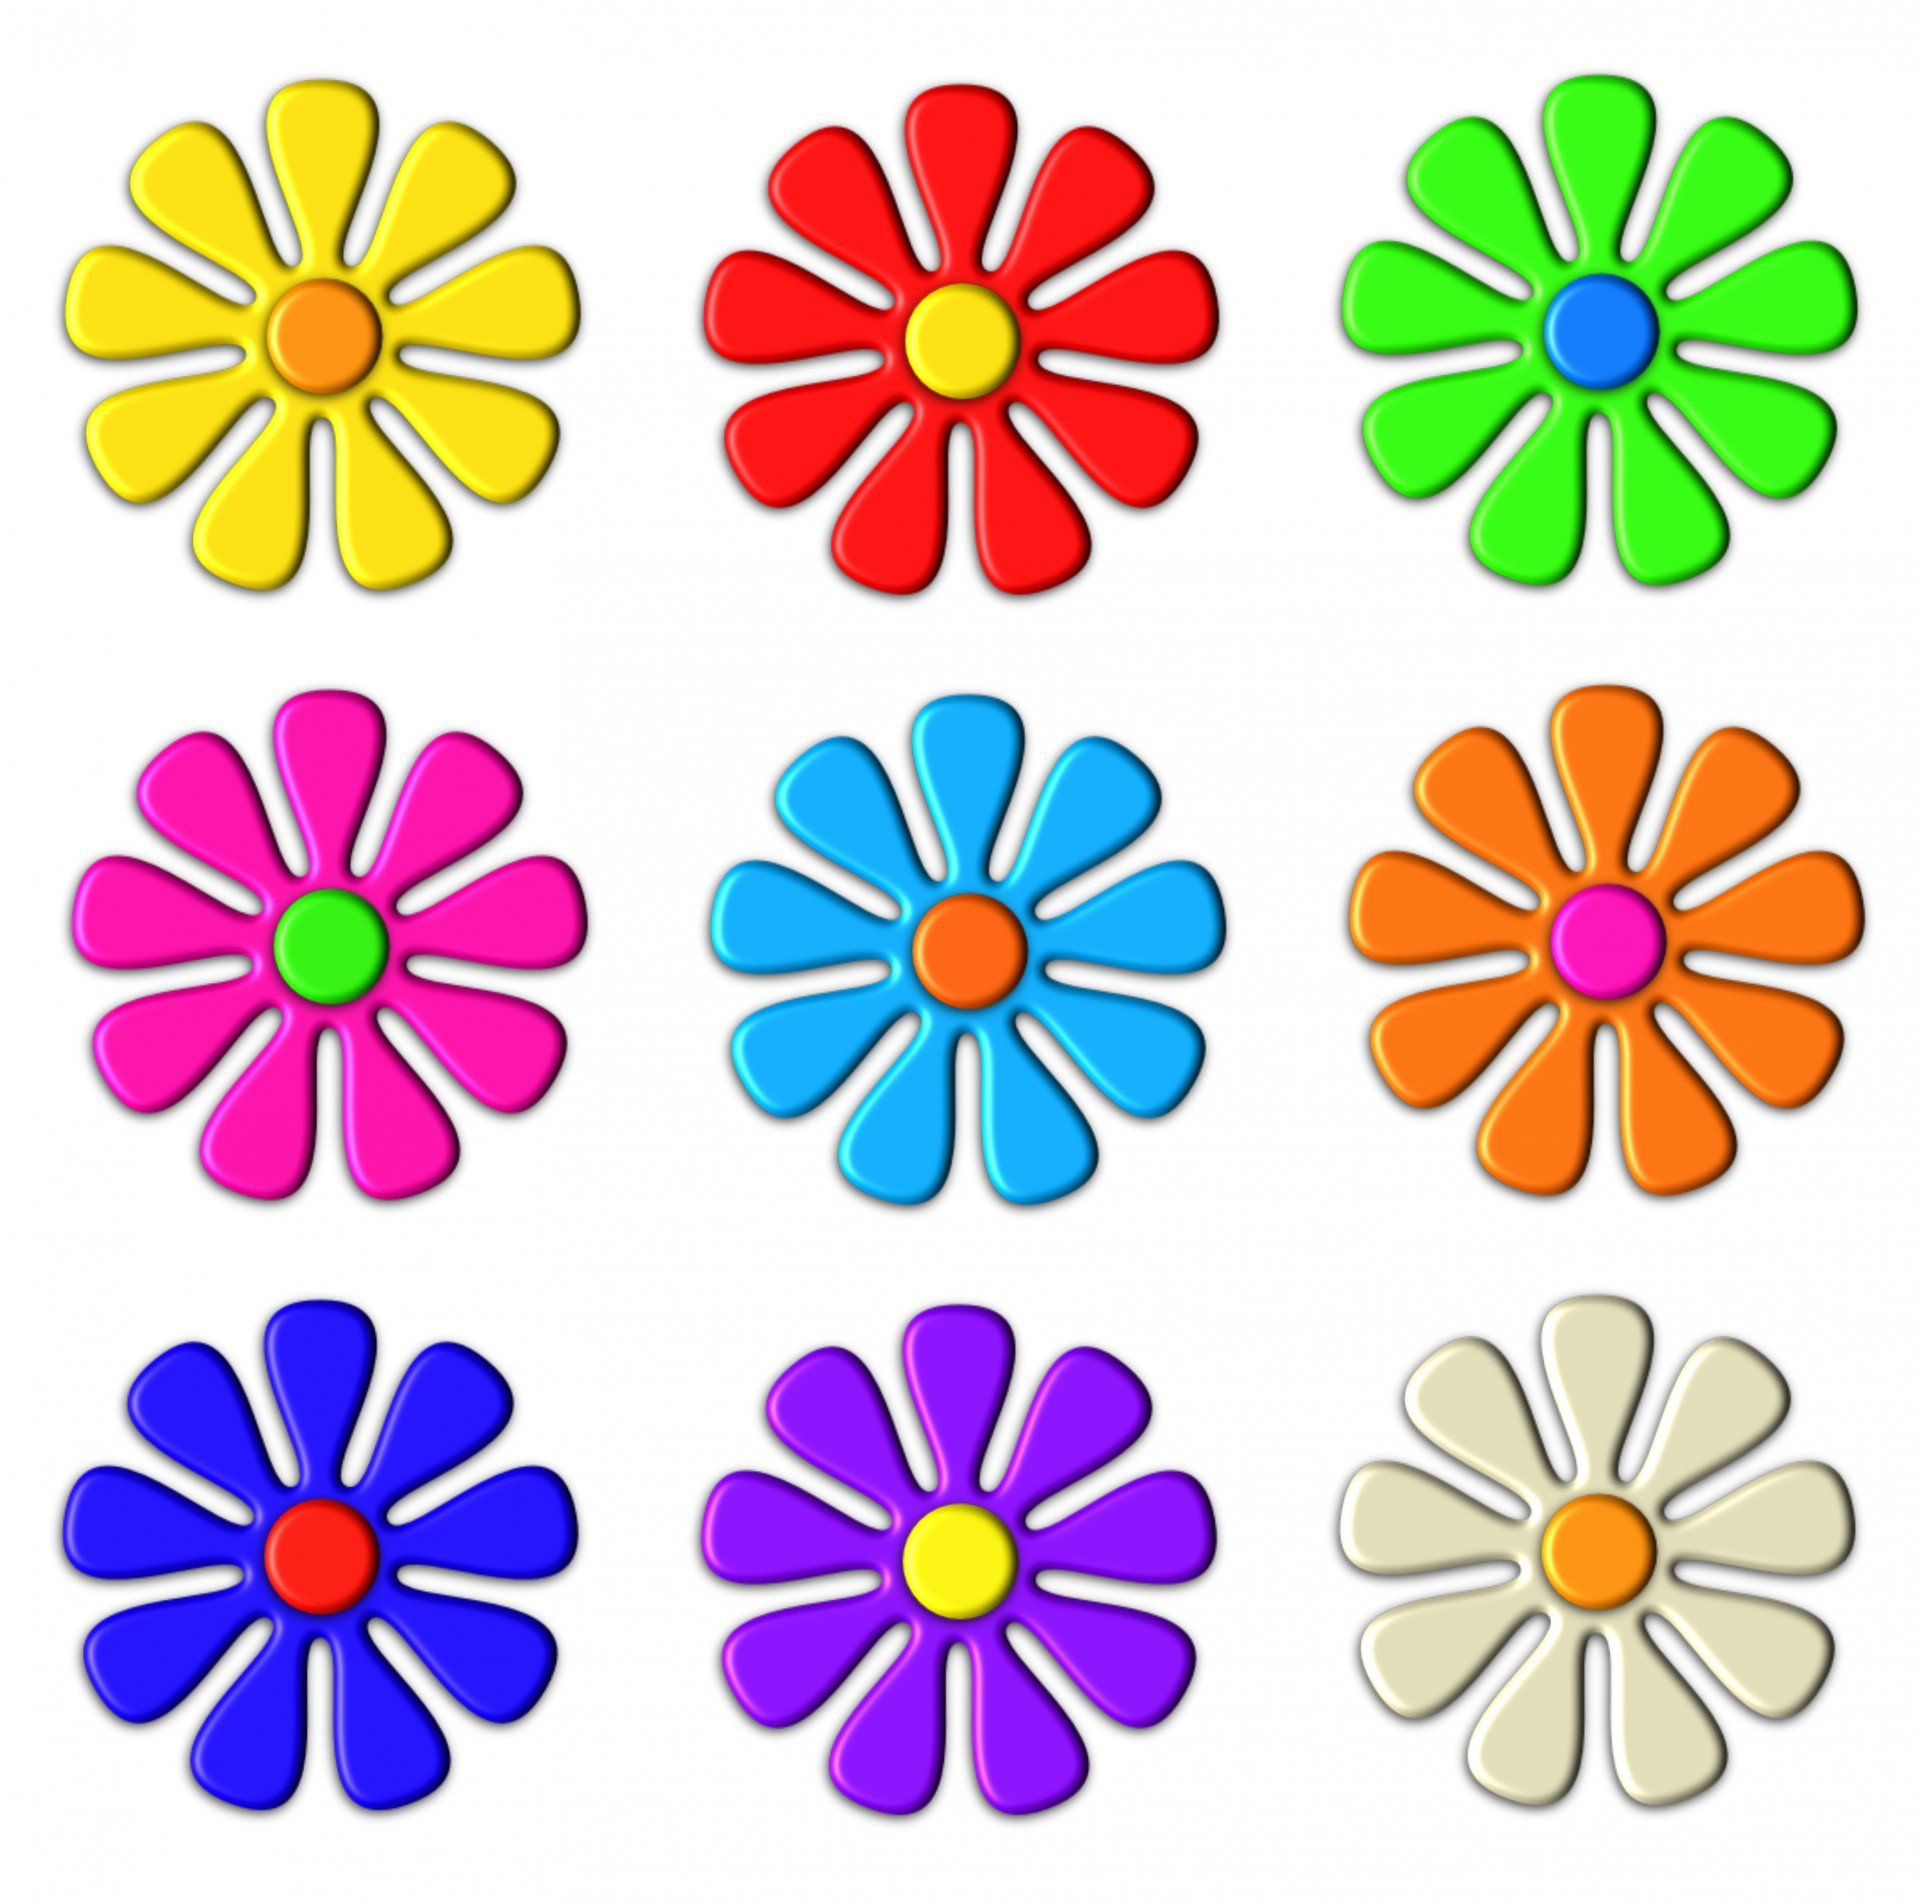 3d Flower Clip Art Free Stock Photo.